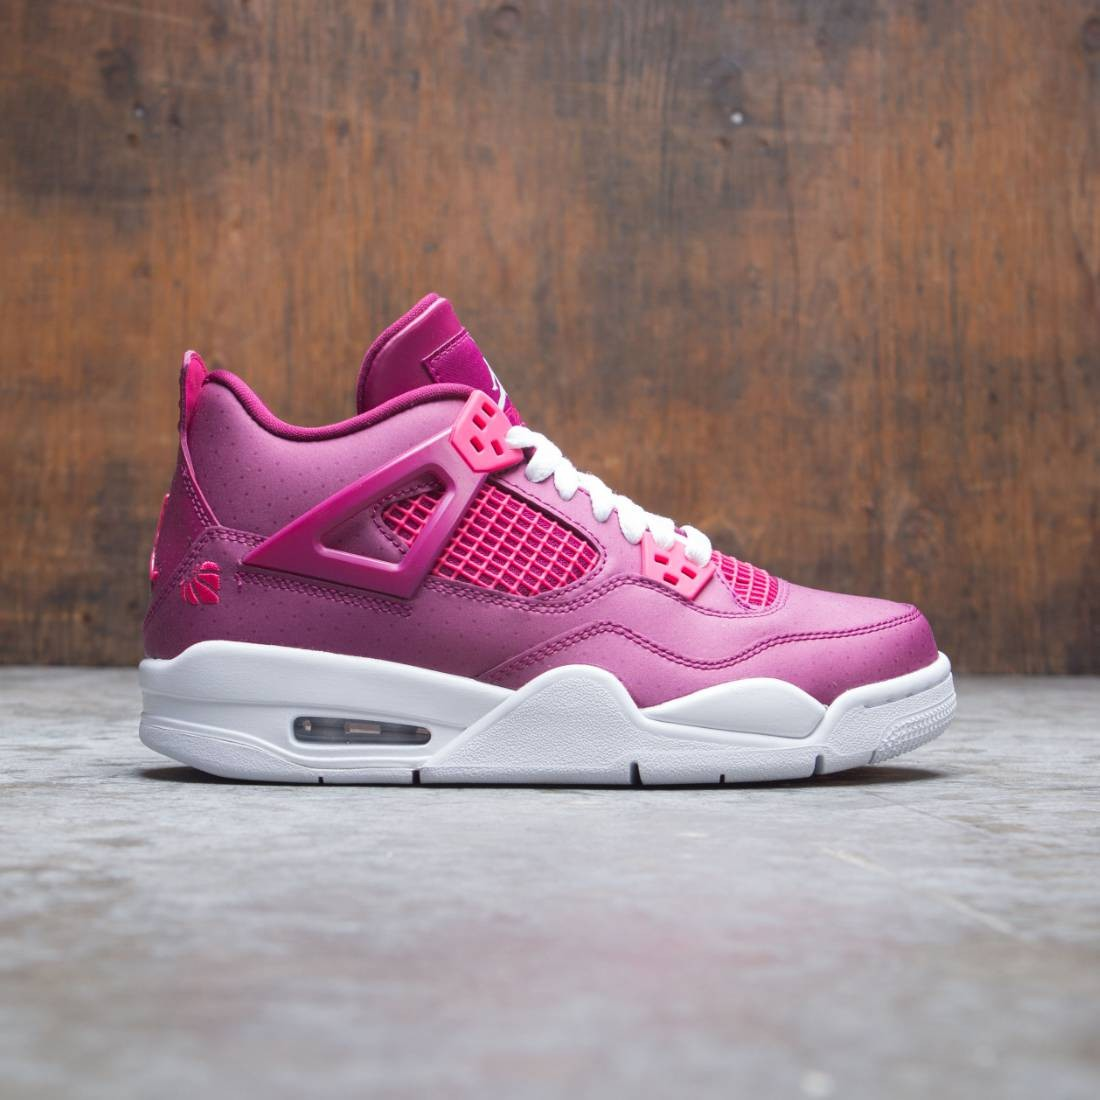 3d62772f5229 jordan big kids air jordan 4 retro true berry rush pink white